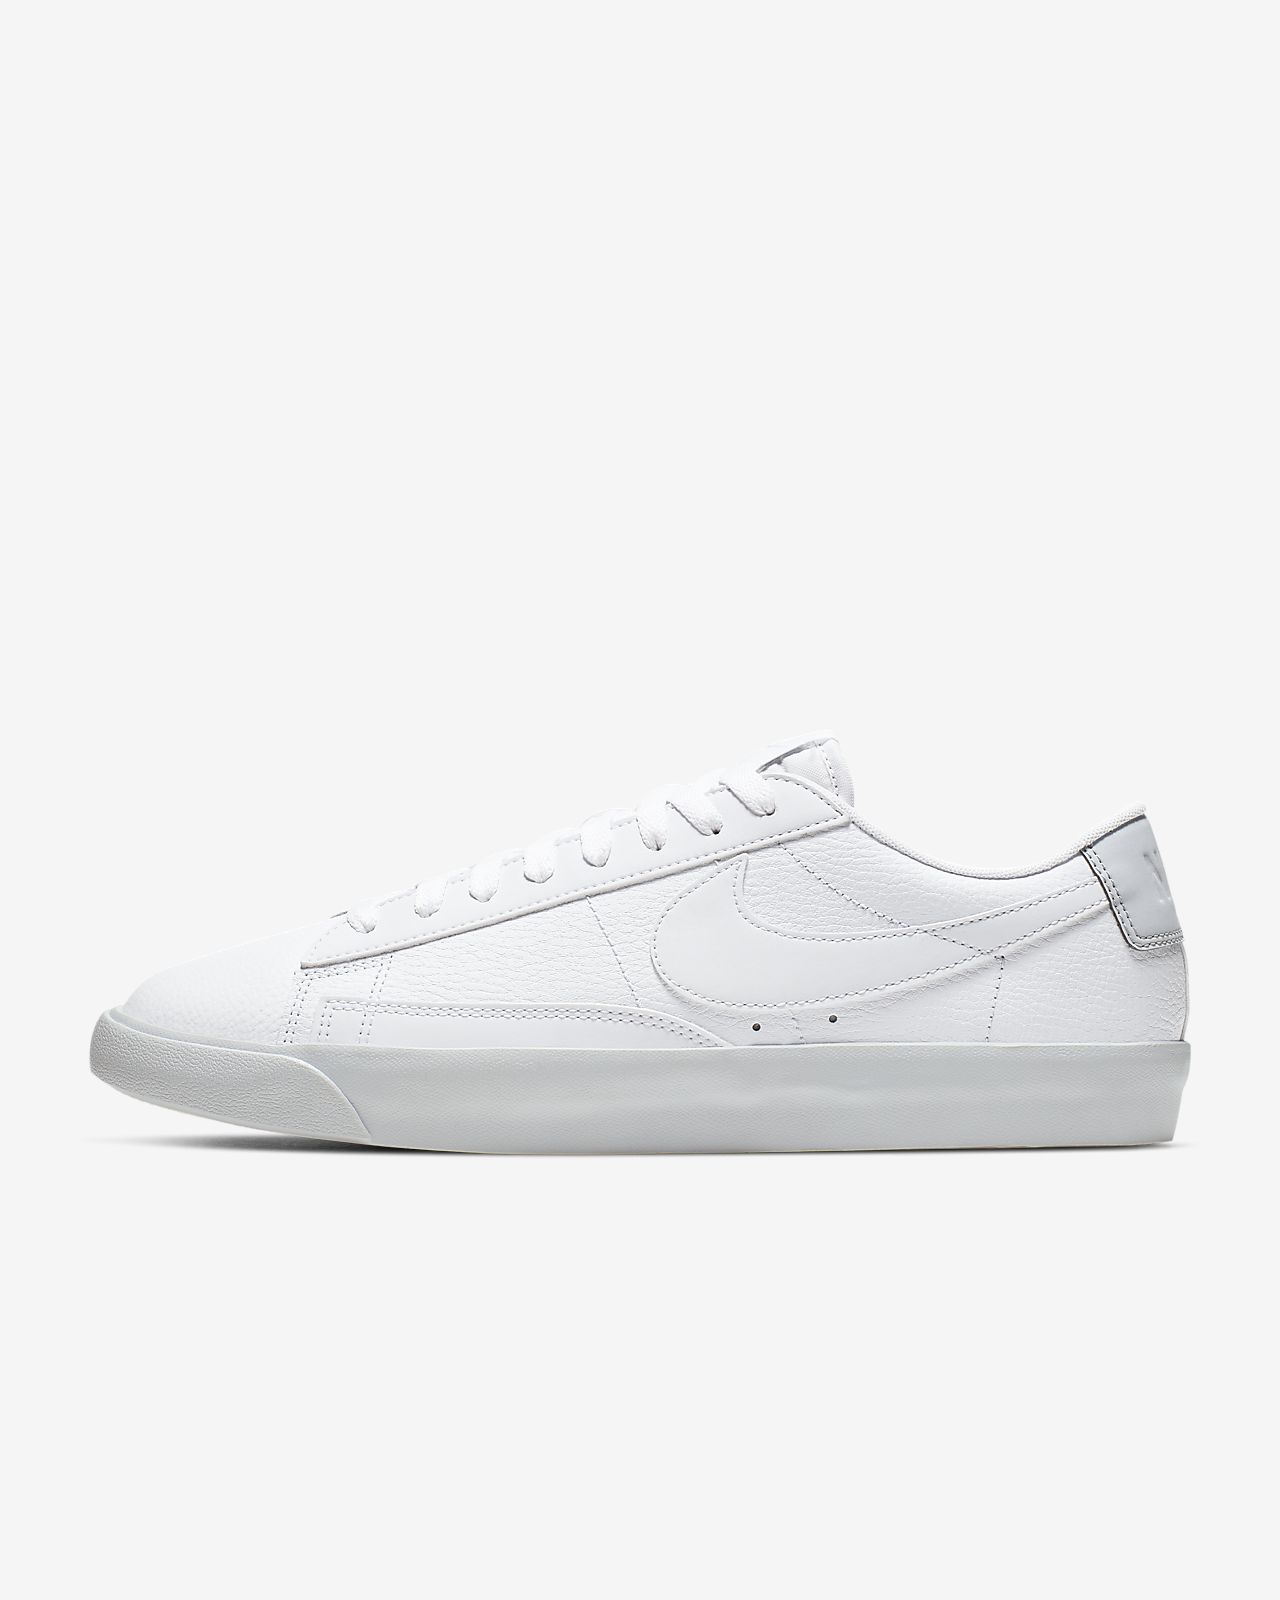 designer fashion 95188 58514 Nike Blazer Low LX Men's Shoe